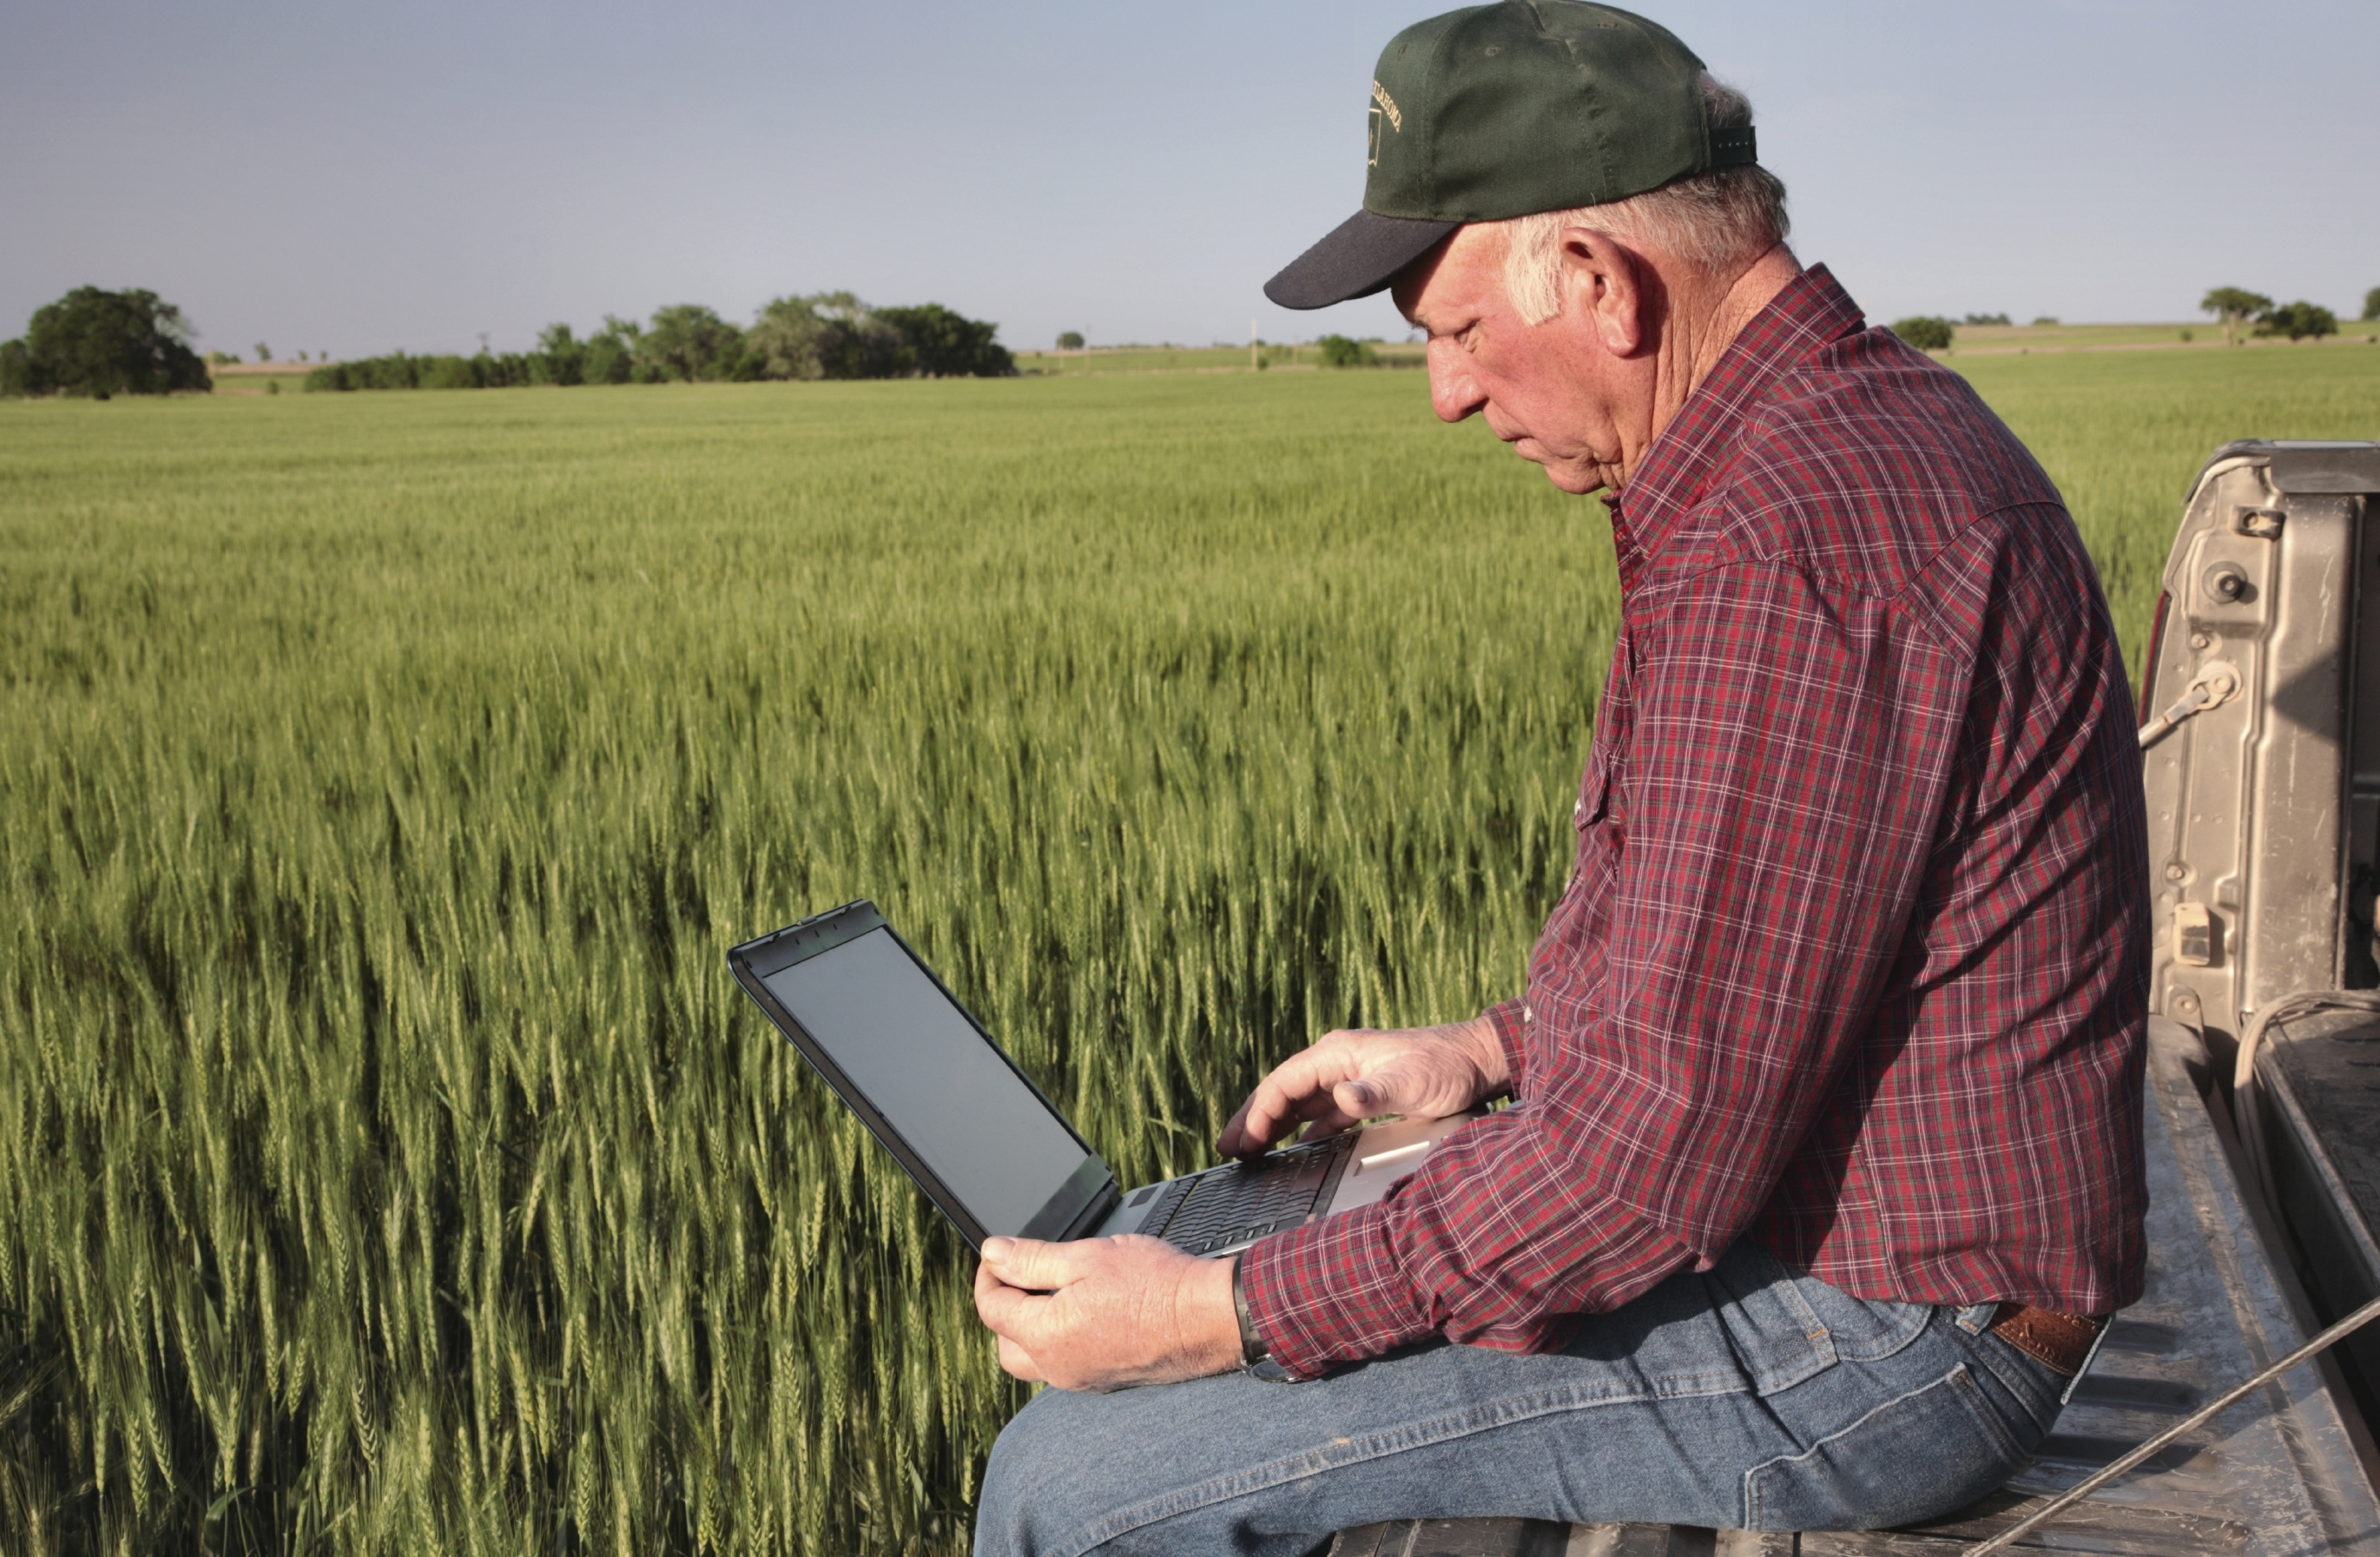 There will also be a number of farmers out there concerned about the quality of their internet connection